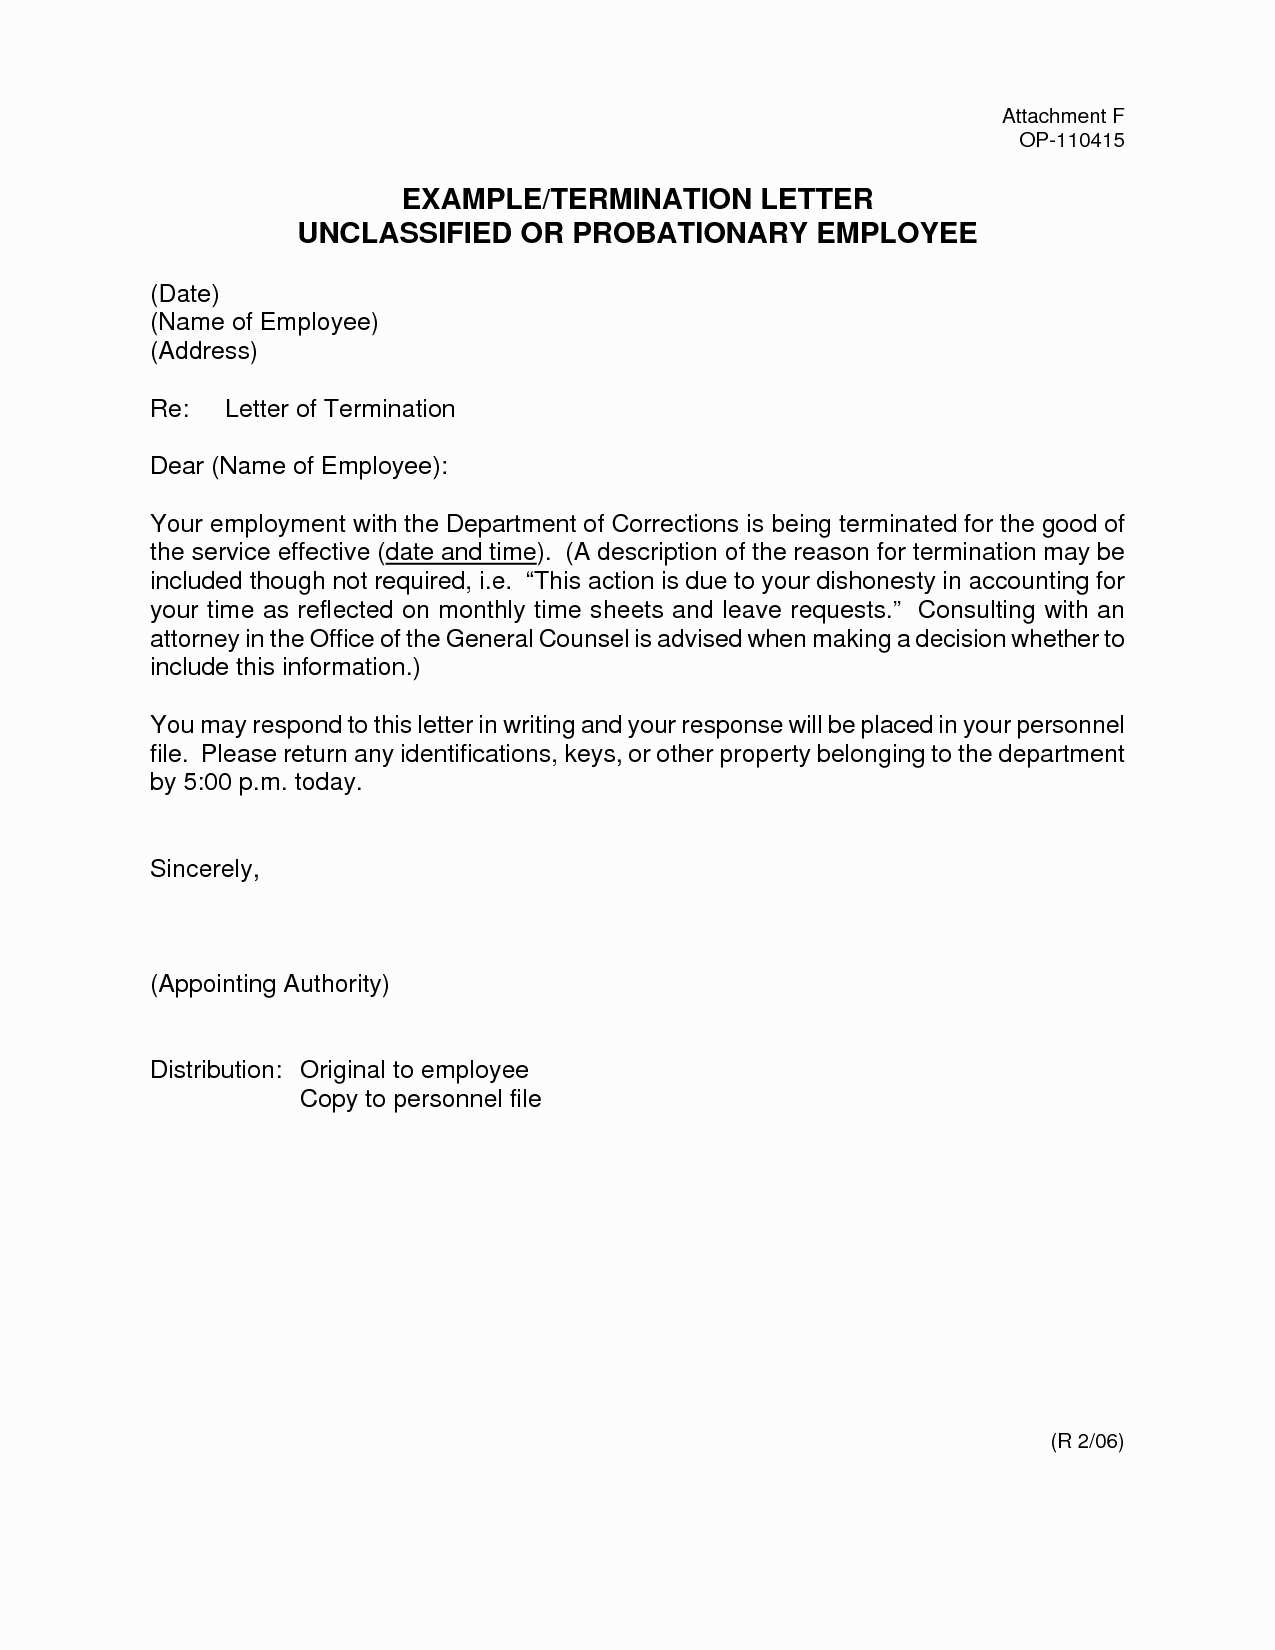 Sample Employee Termination Letter Template Samples | Letter ...